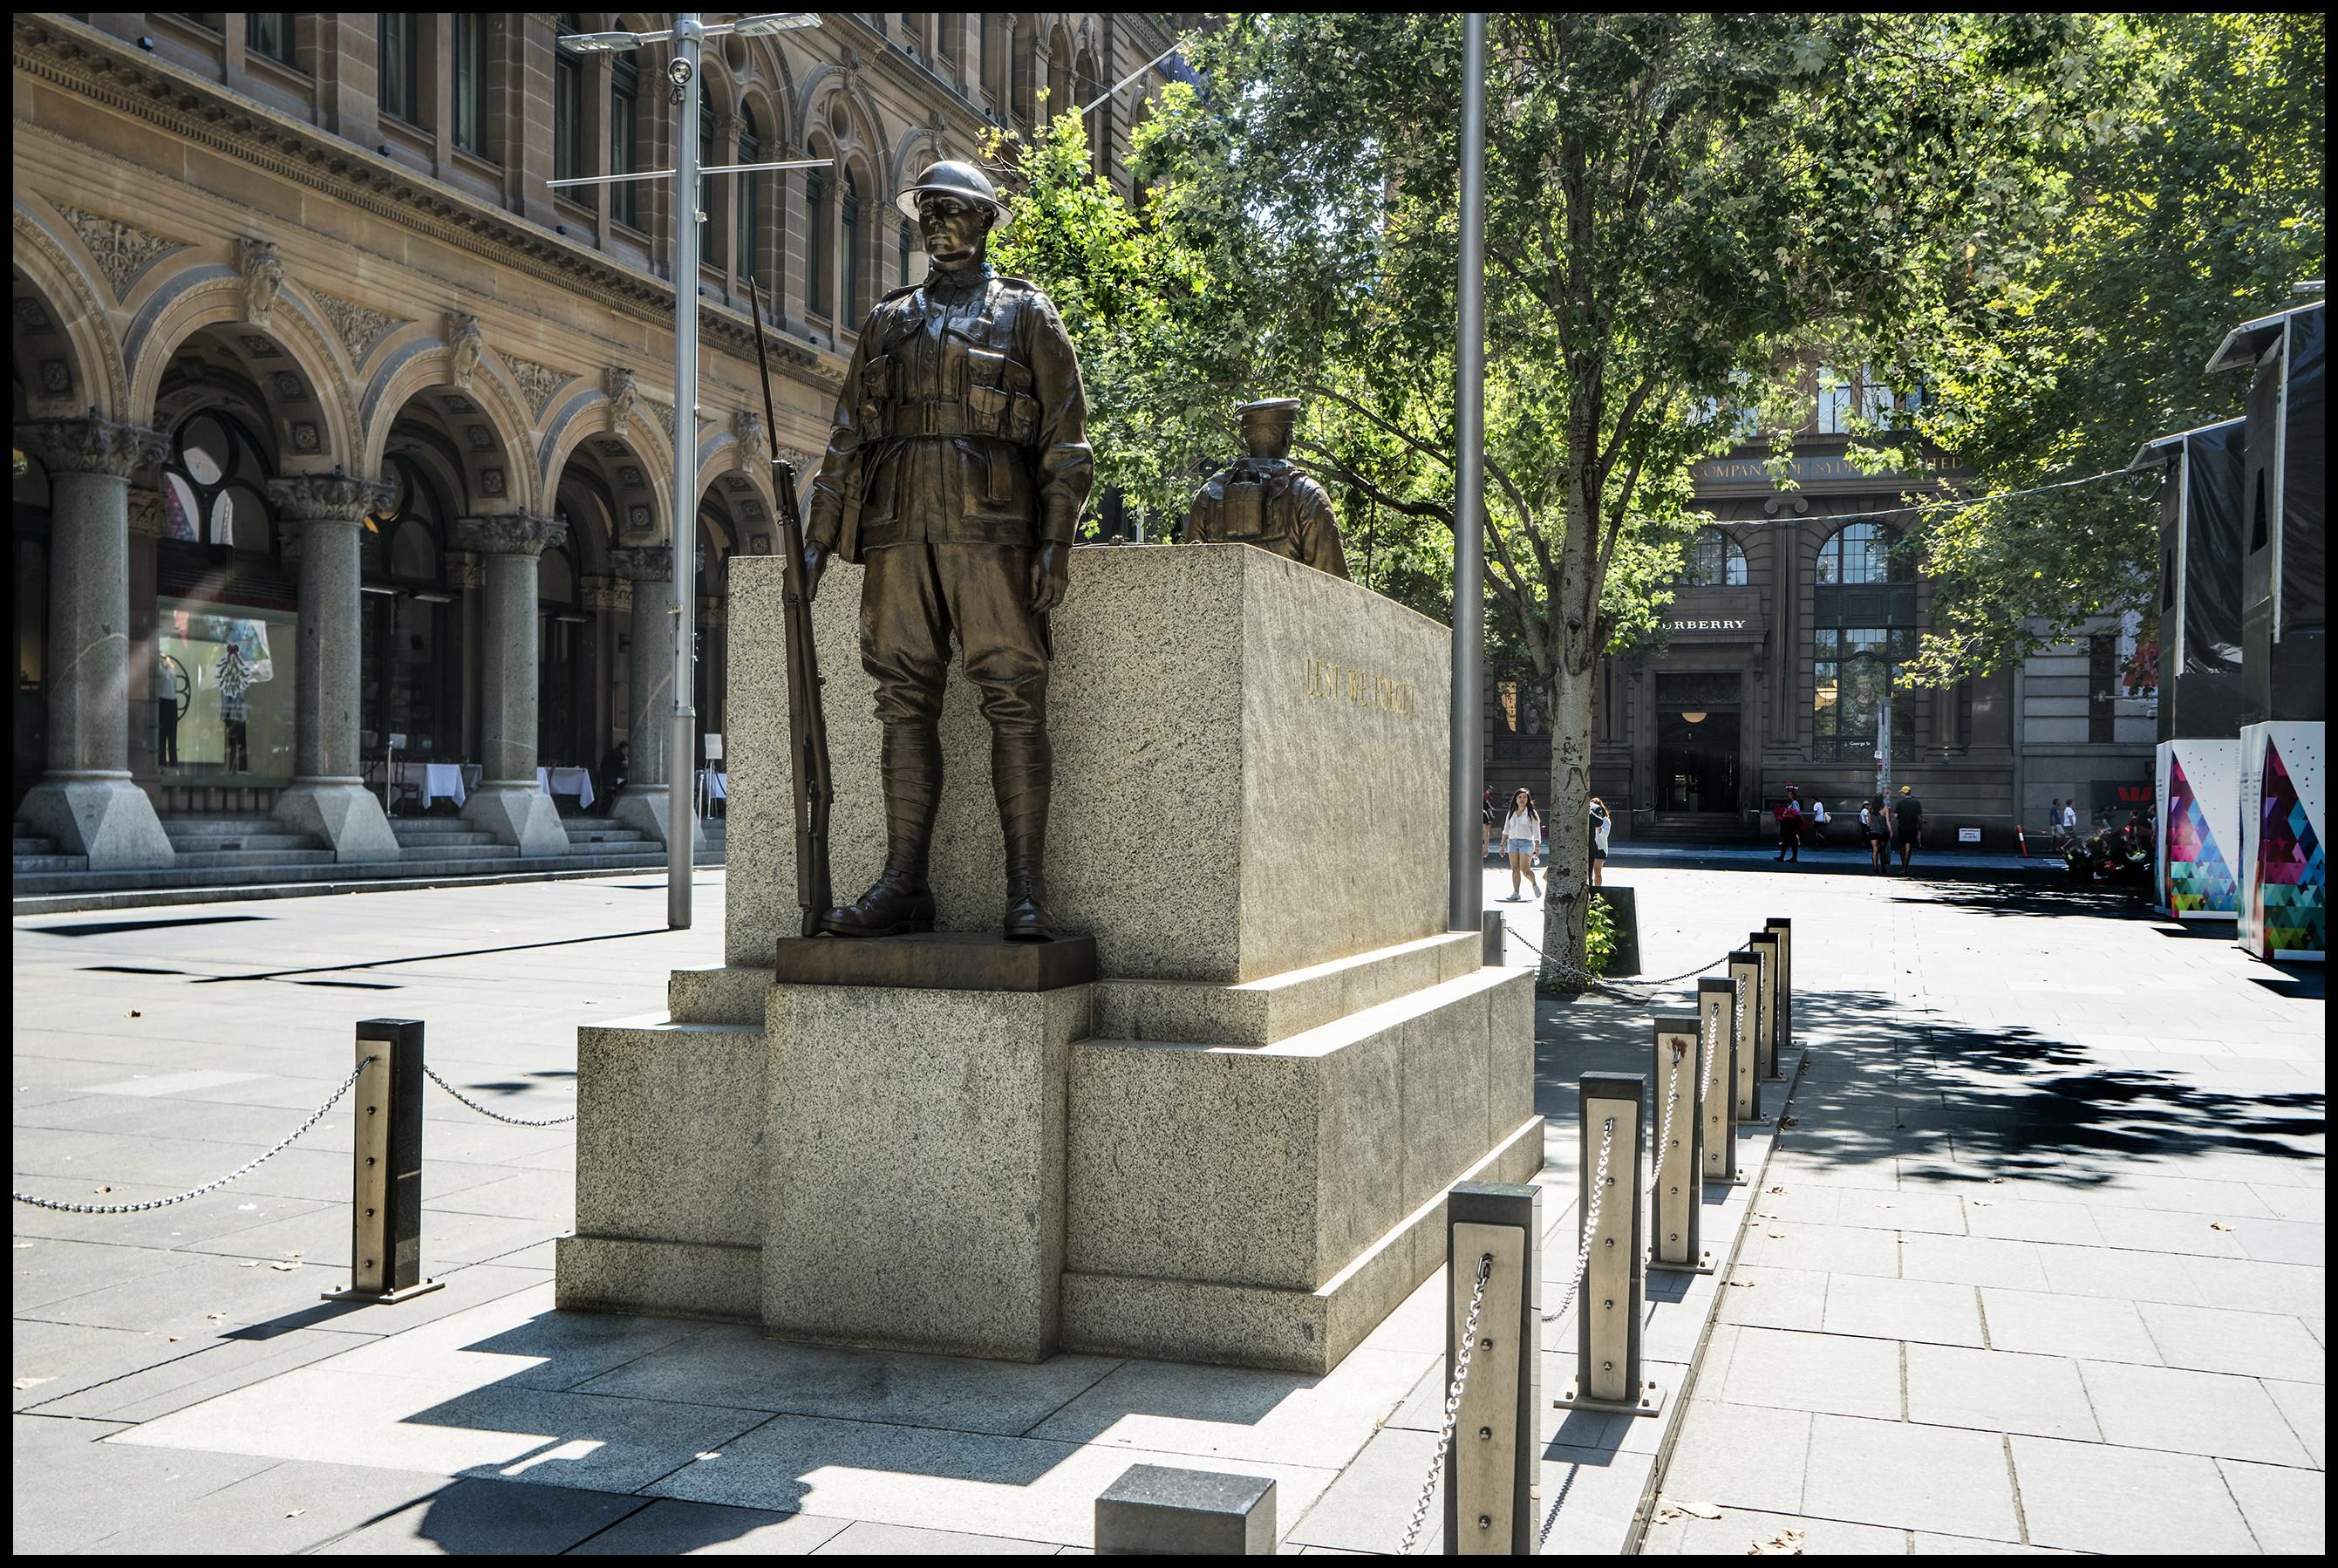 Sydney Cenotaph found at Martin Place.